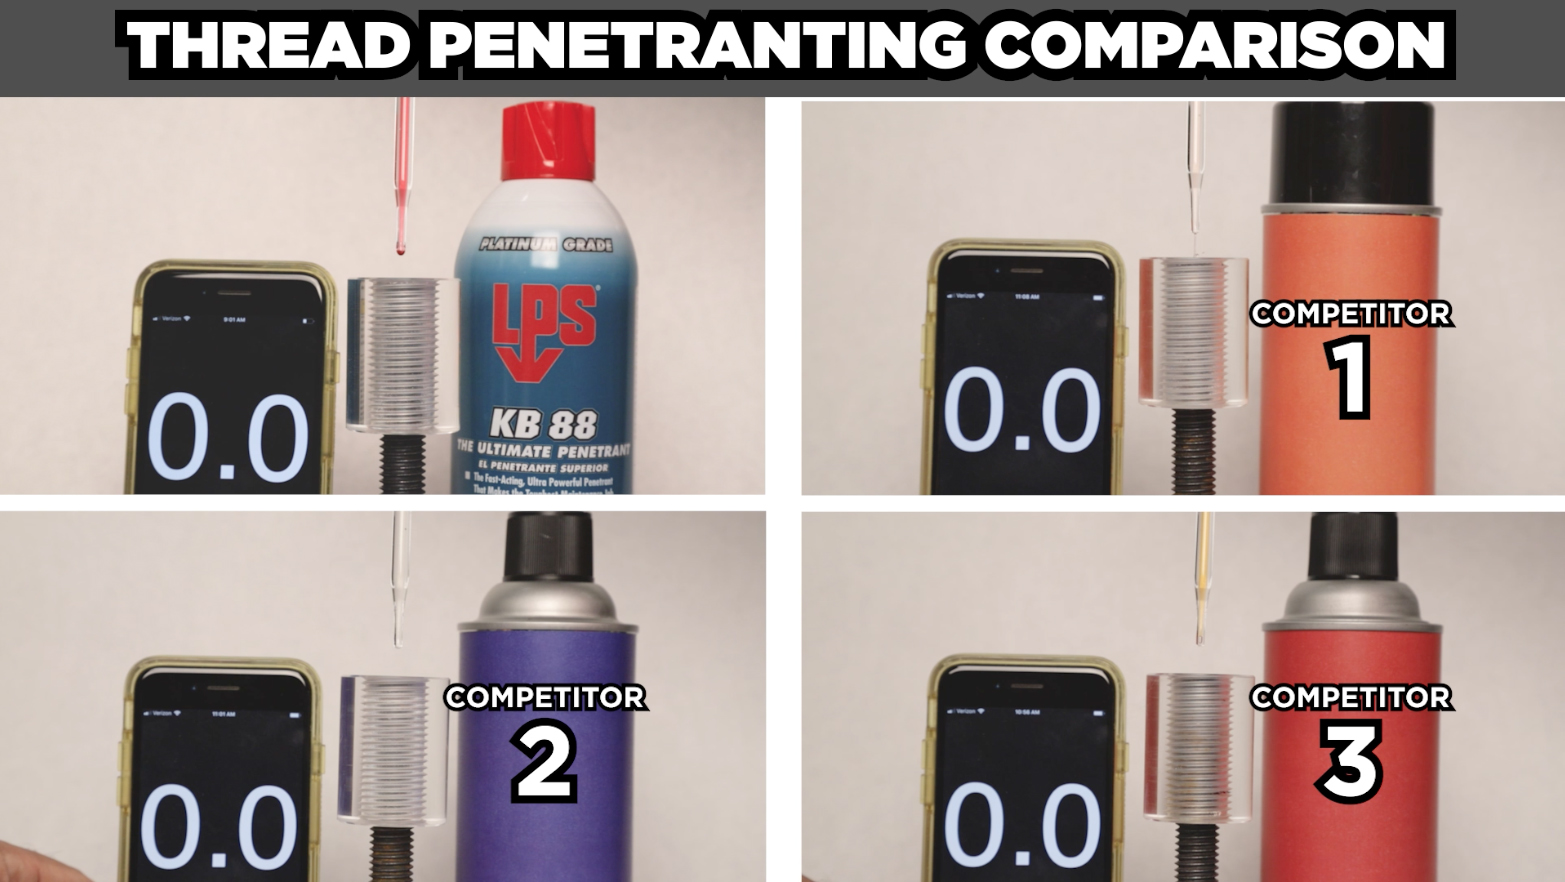 KB-88 The Ultimate Penetrant comparison to competitive brands